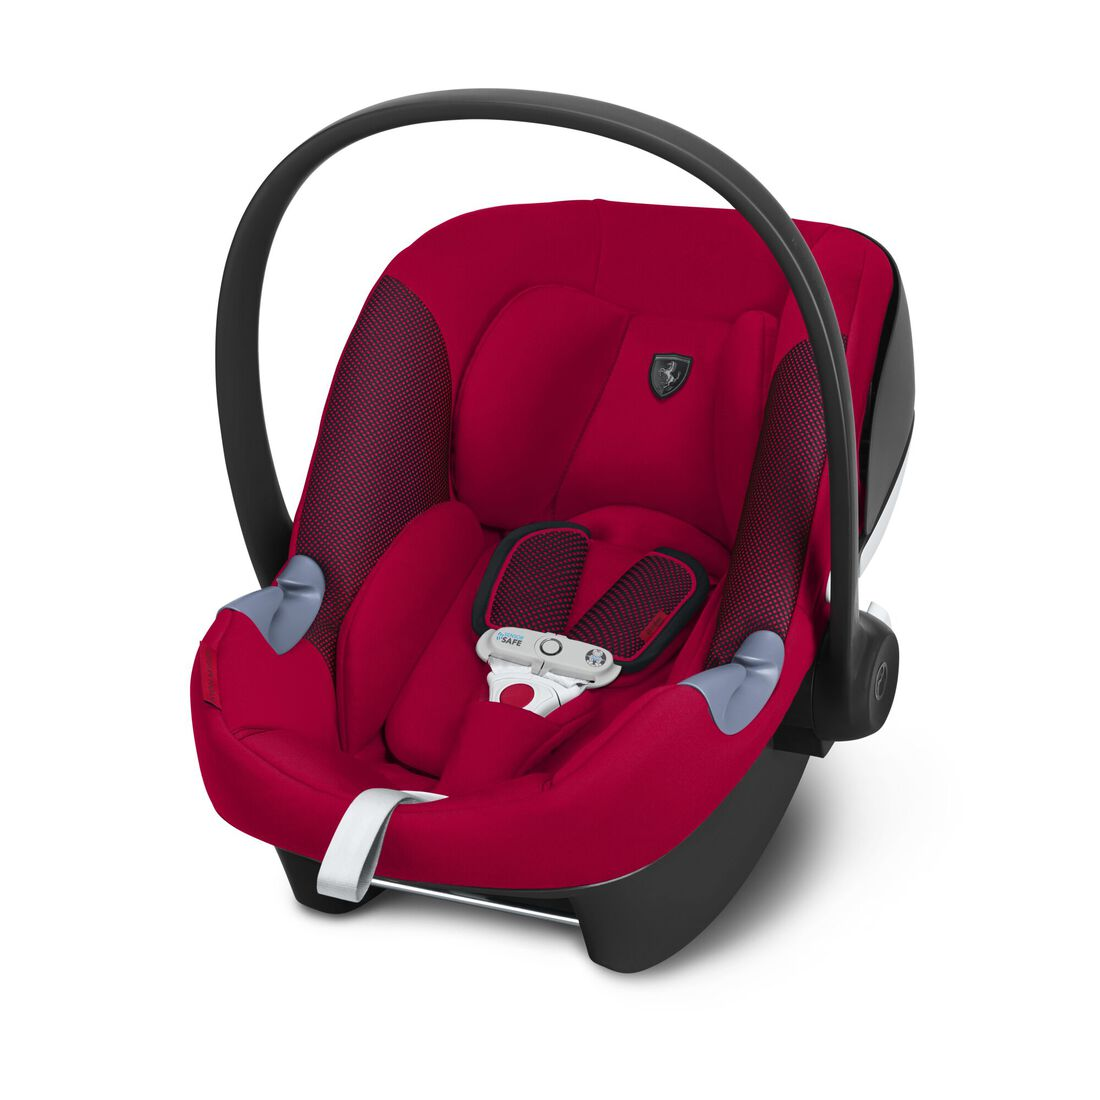 CYBEX Aton M i-Size - Ferrari Racing Red in Ferrari Racing Red large image number 1